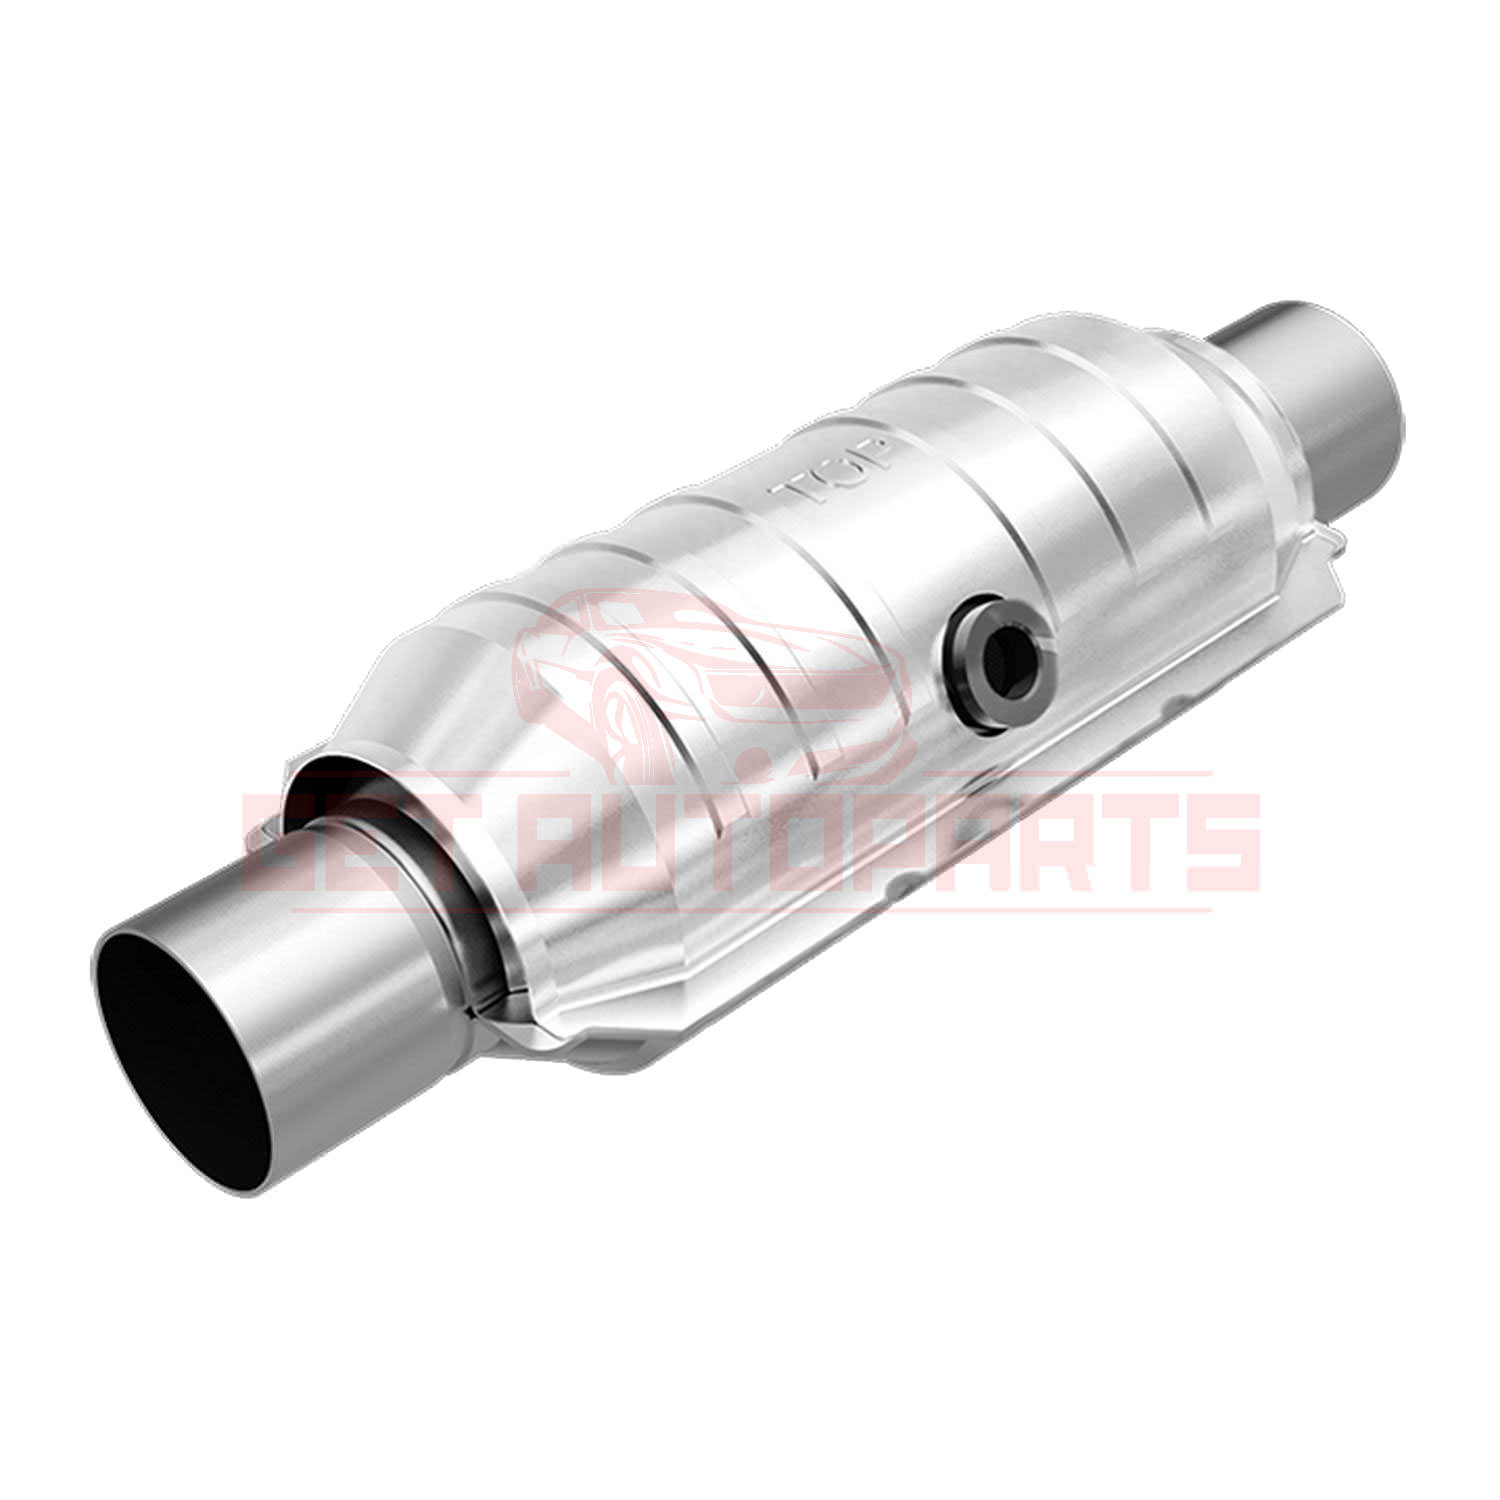 Magnaflow Direct Fit -Catalytic Converter for Dodge Ram 1500 2009-2010 part in Catalytic Converters category